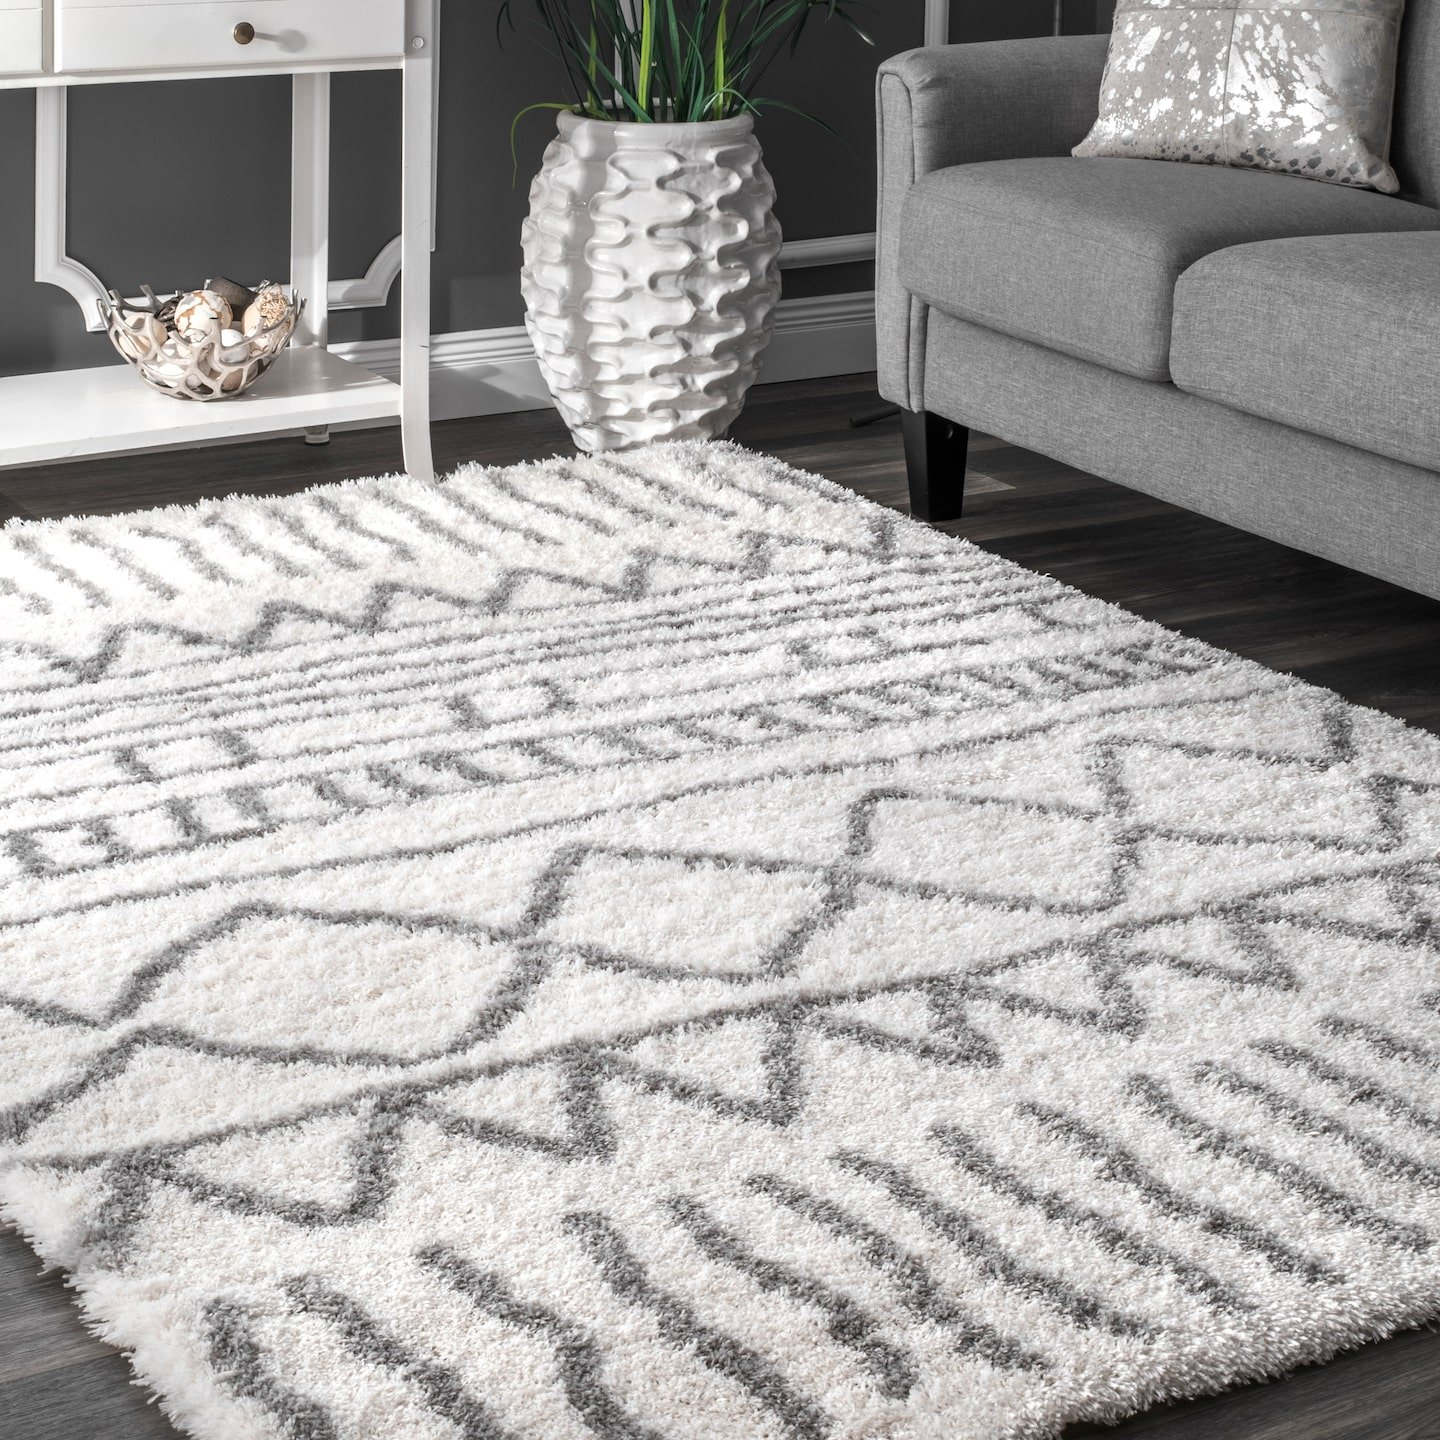 Grip-It Cushioned Non-Slip Rug Pad for Rugs on Hard Surface Floors, 5 by 8-Feet